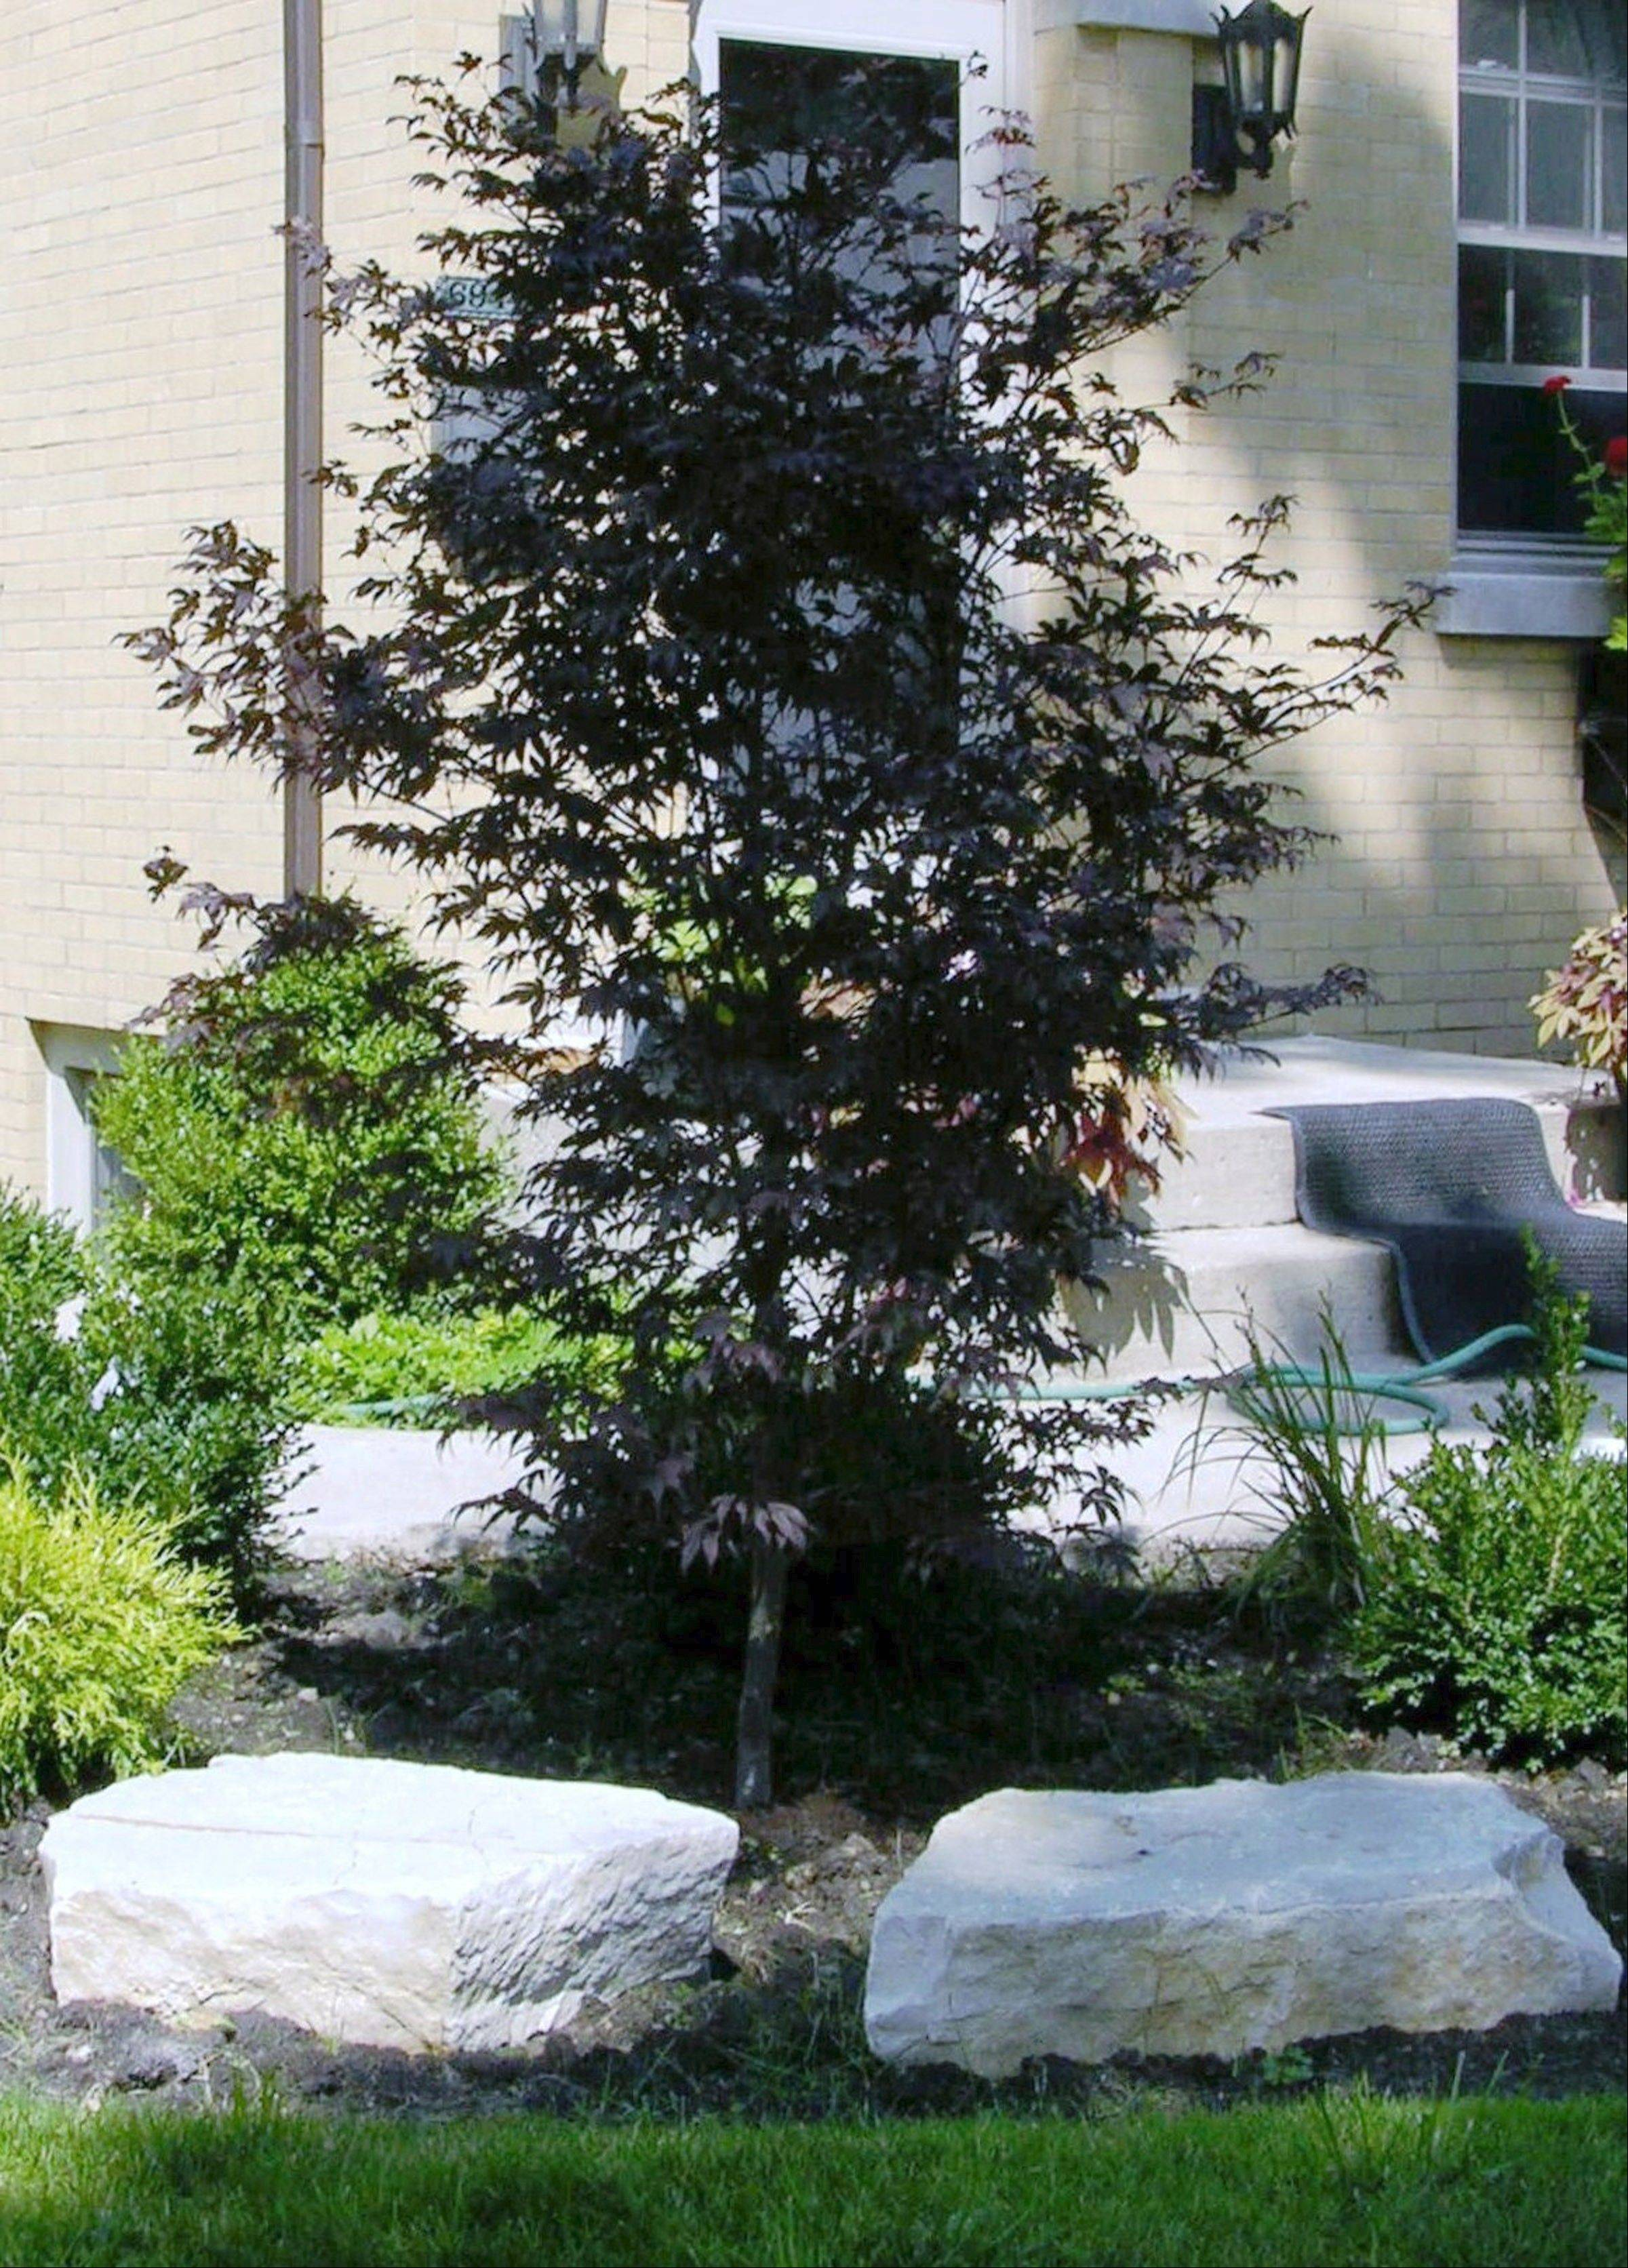 An outcropping of stones near an ornamental tree can add dimension to an outdoor design as well as help to anchor the house.